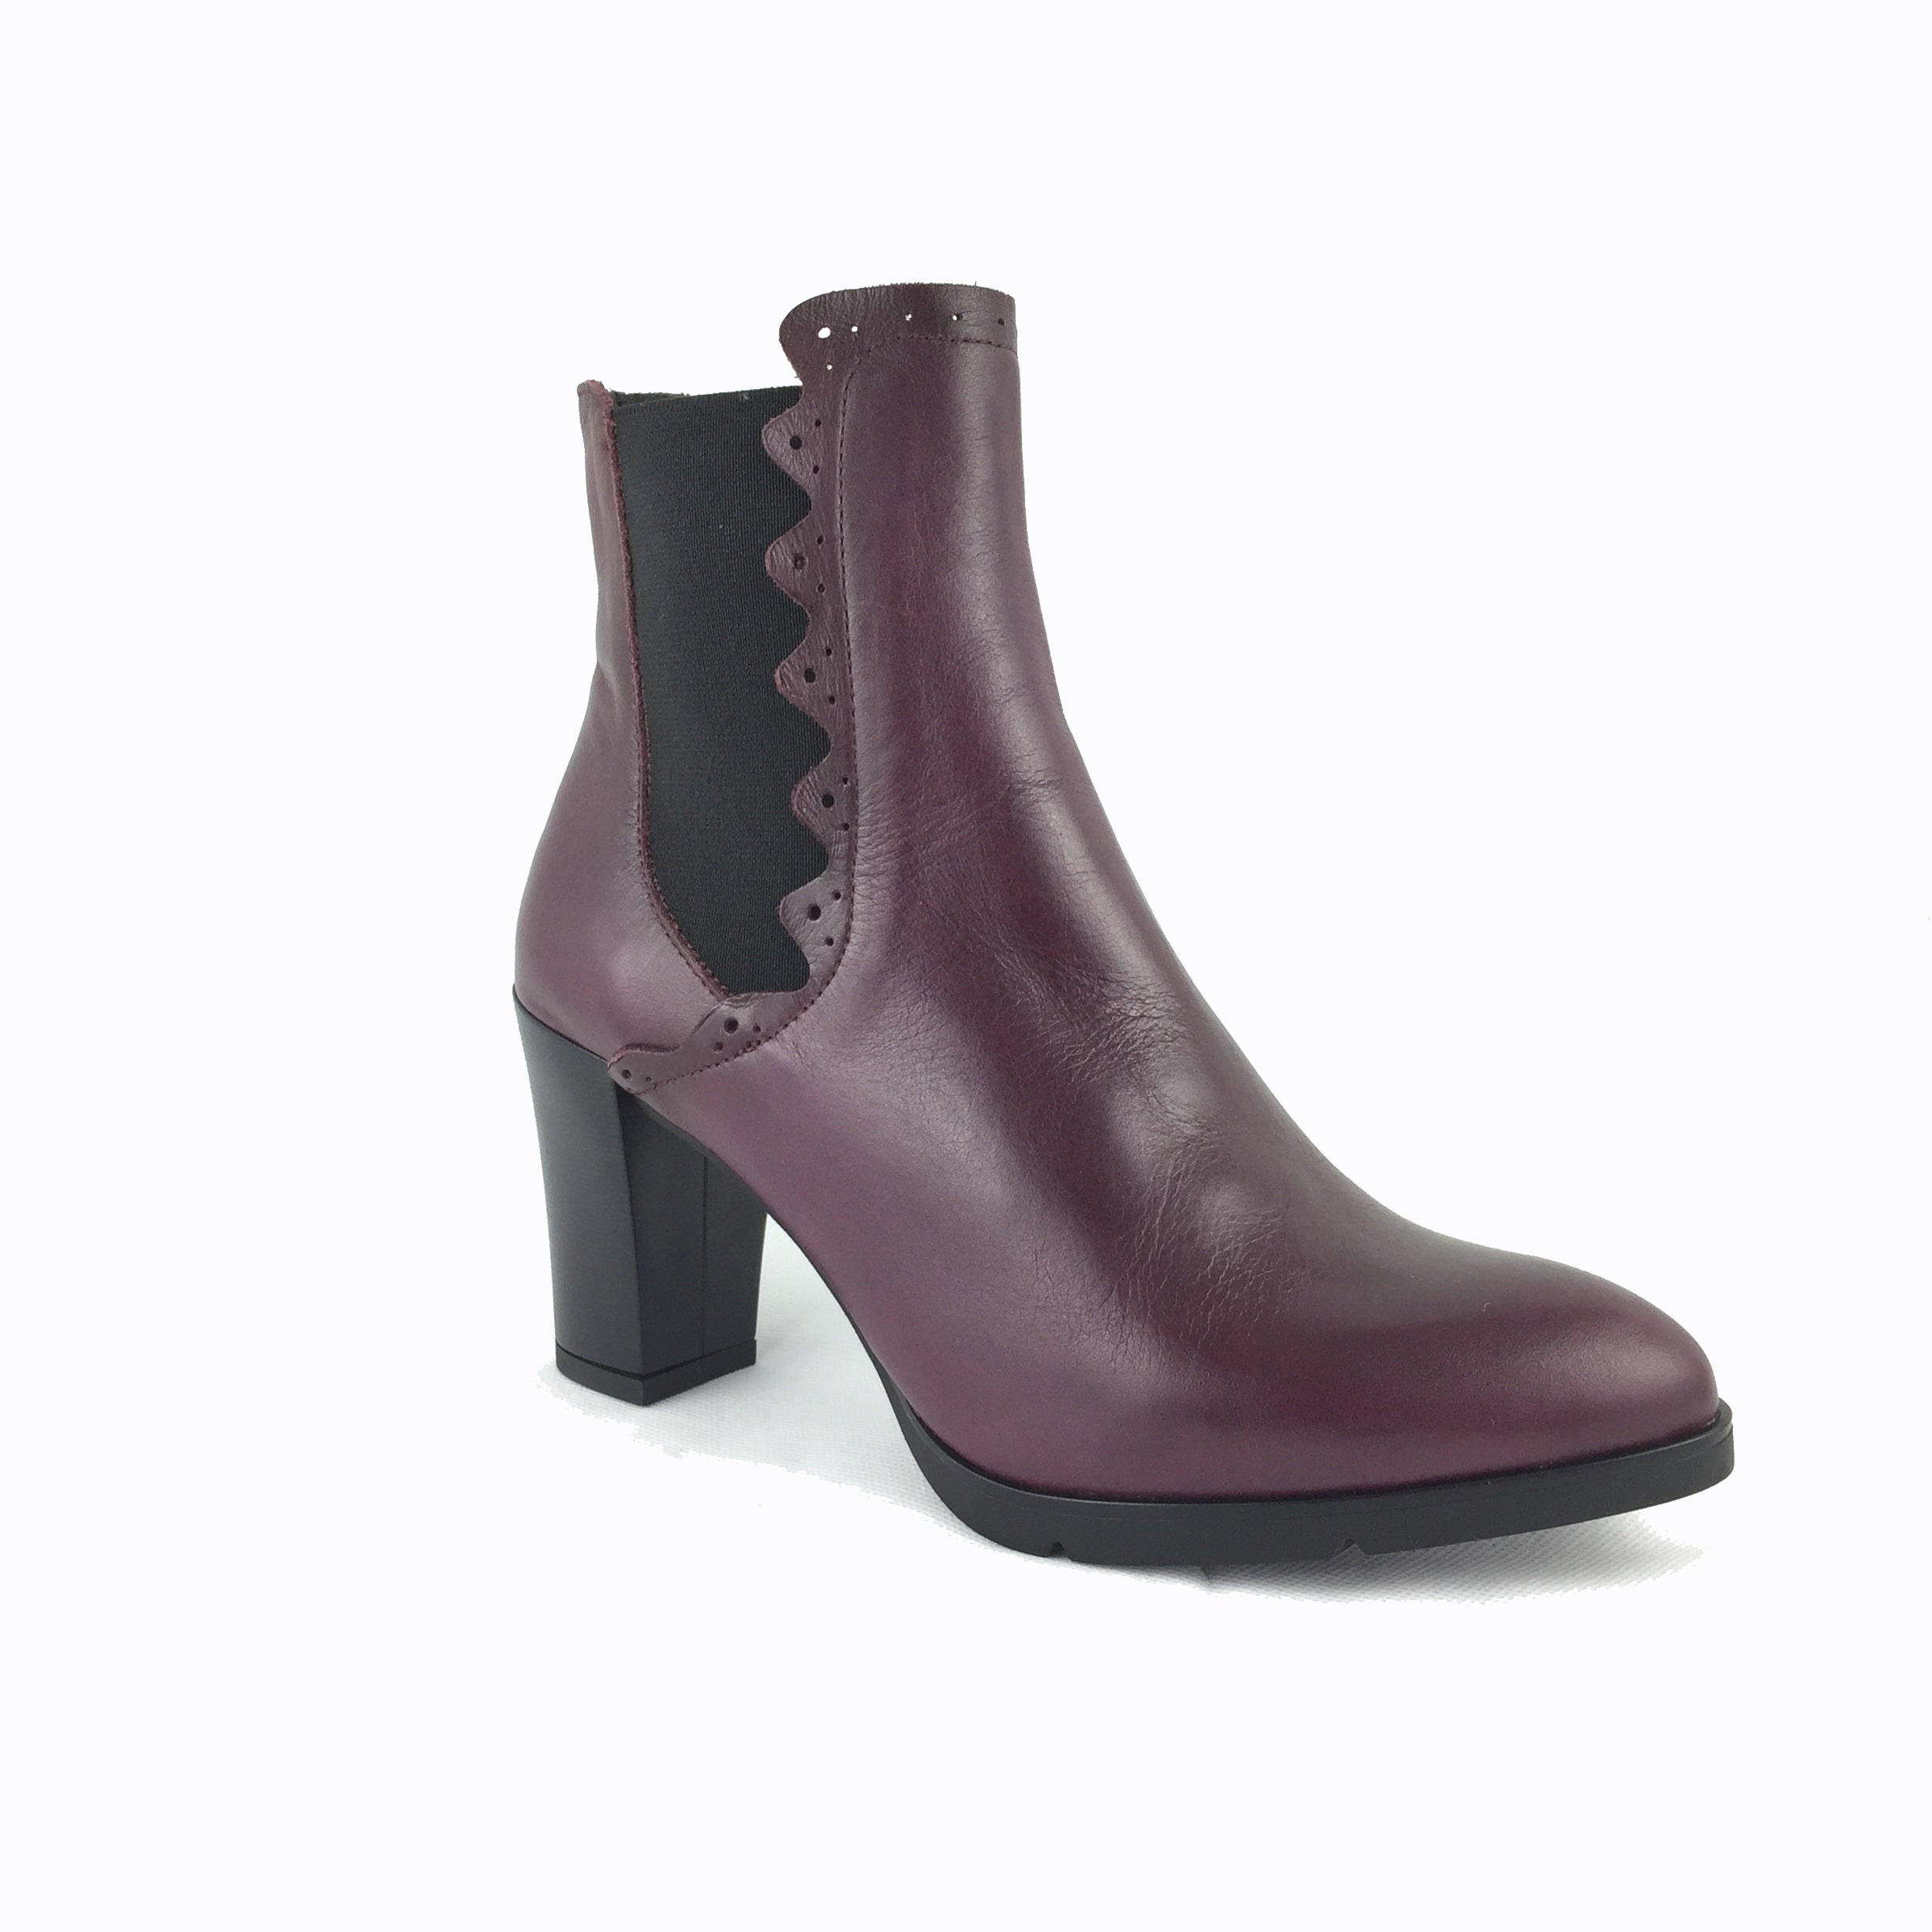 Cherrypic Wine leather mid heel ankle boot. With black elastic sides and frill detailing. Black wooden effect heel.